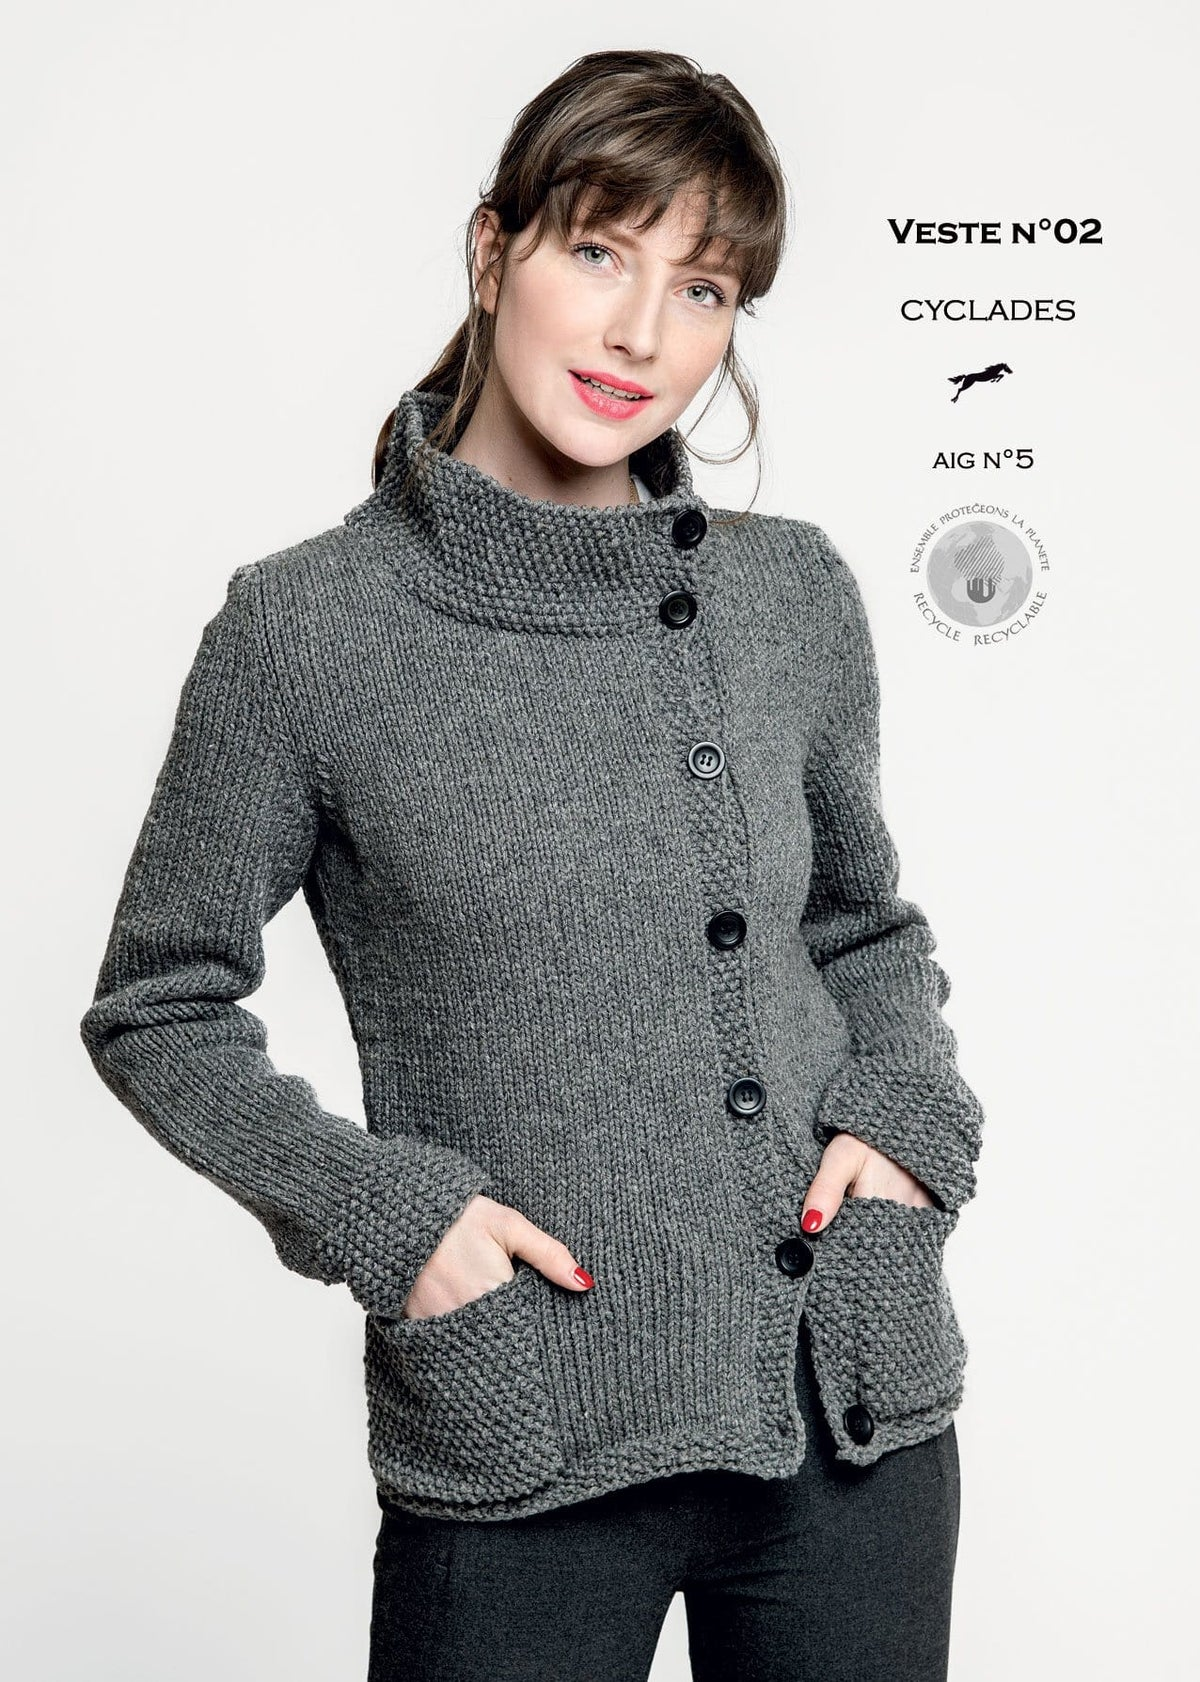 Patron Cheval Blanc Catalogue 30-02 - Veste